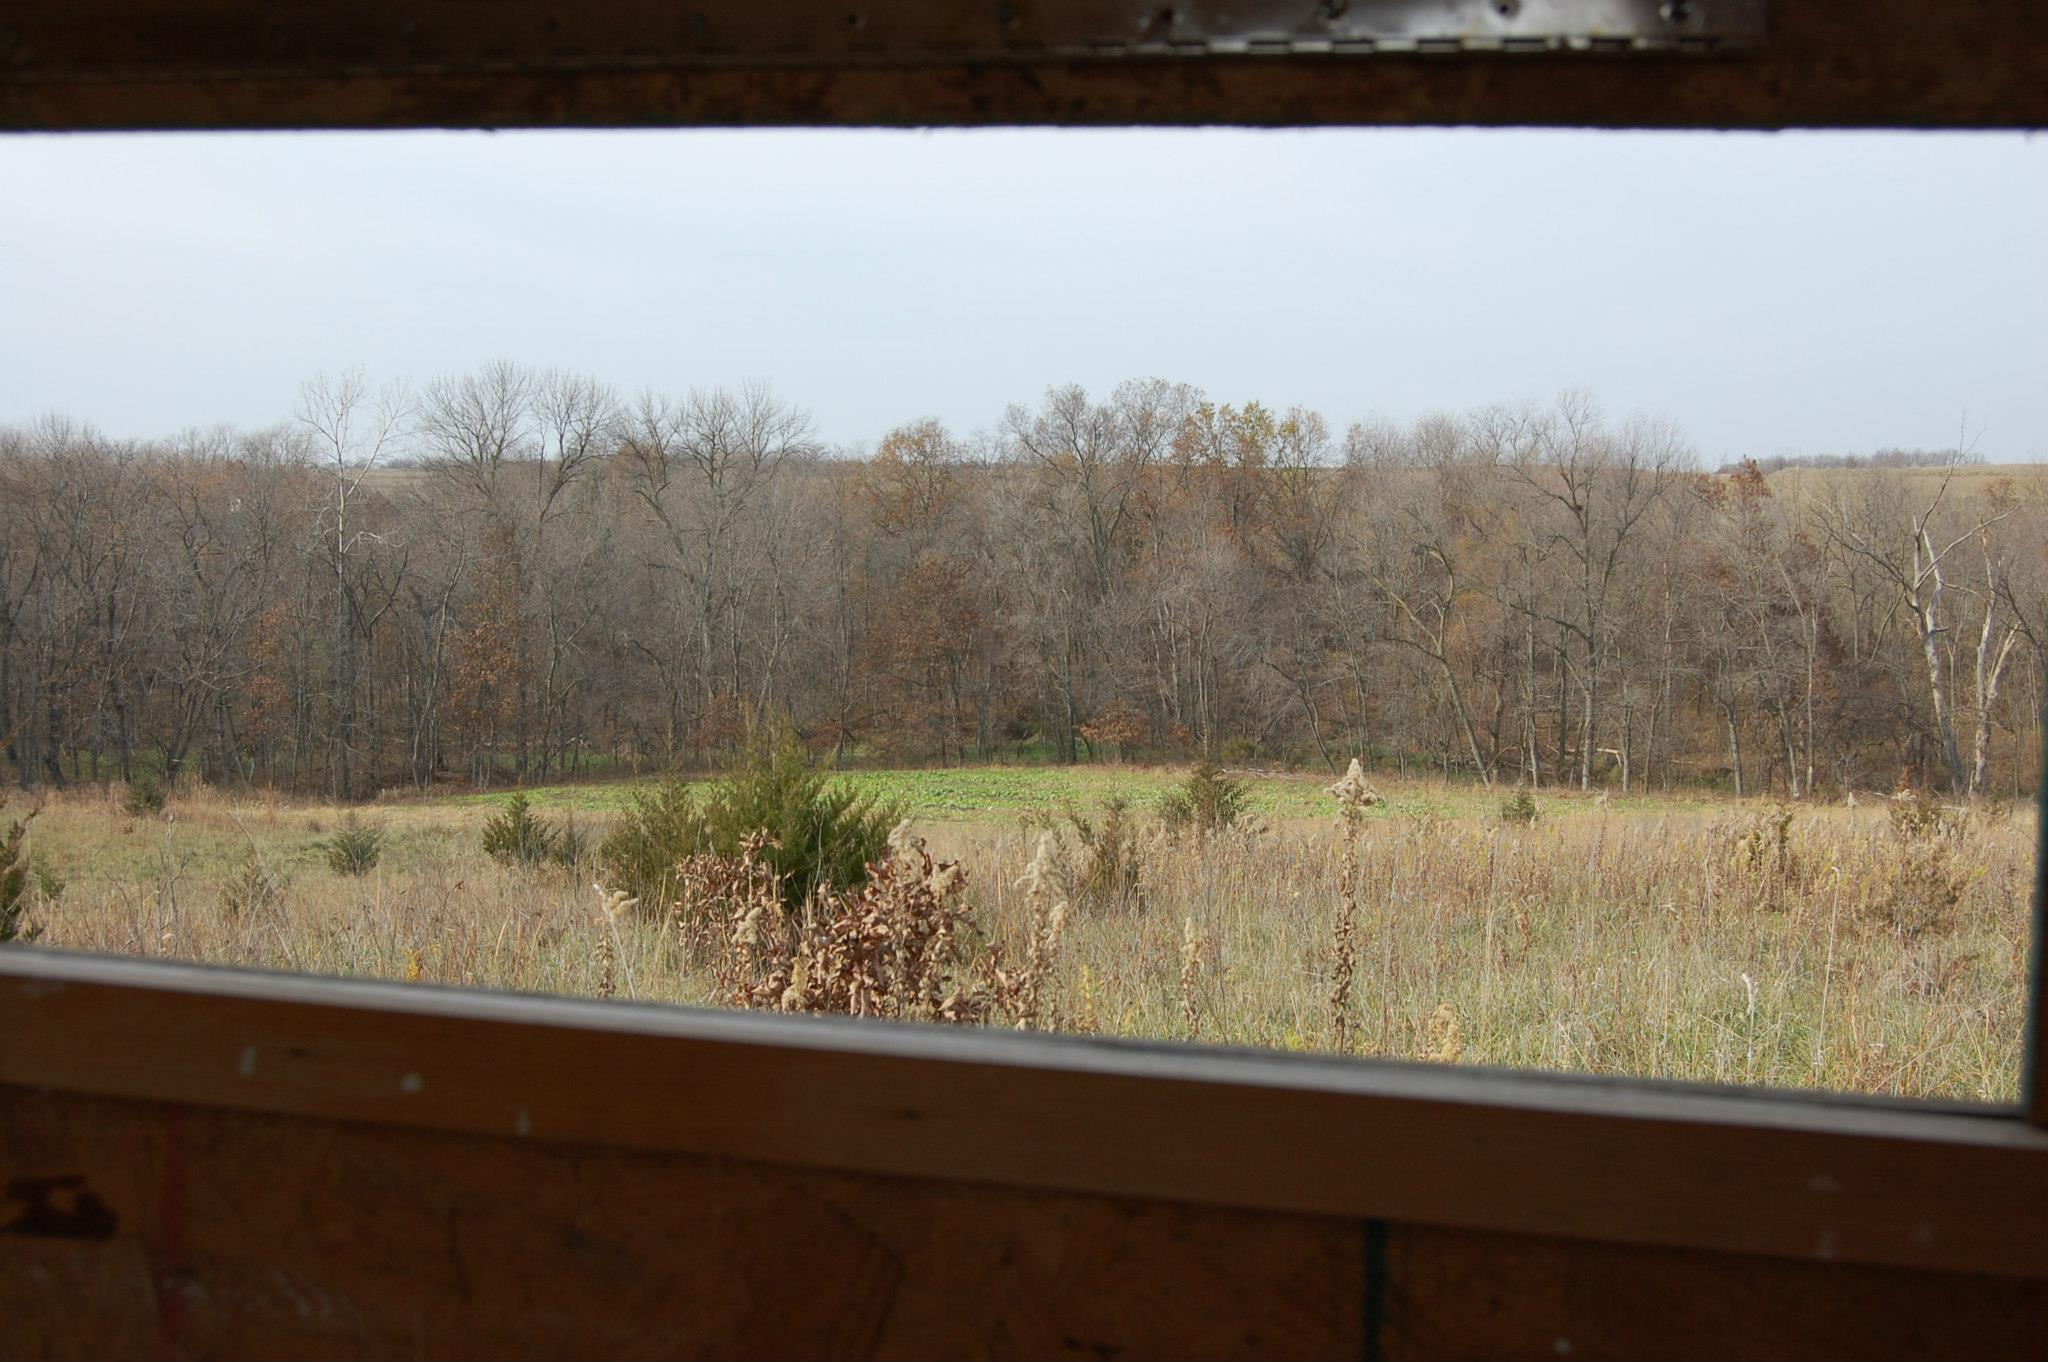 Overlooking the Tecomate food plot.